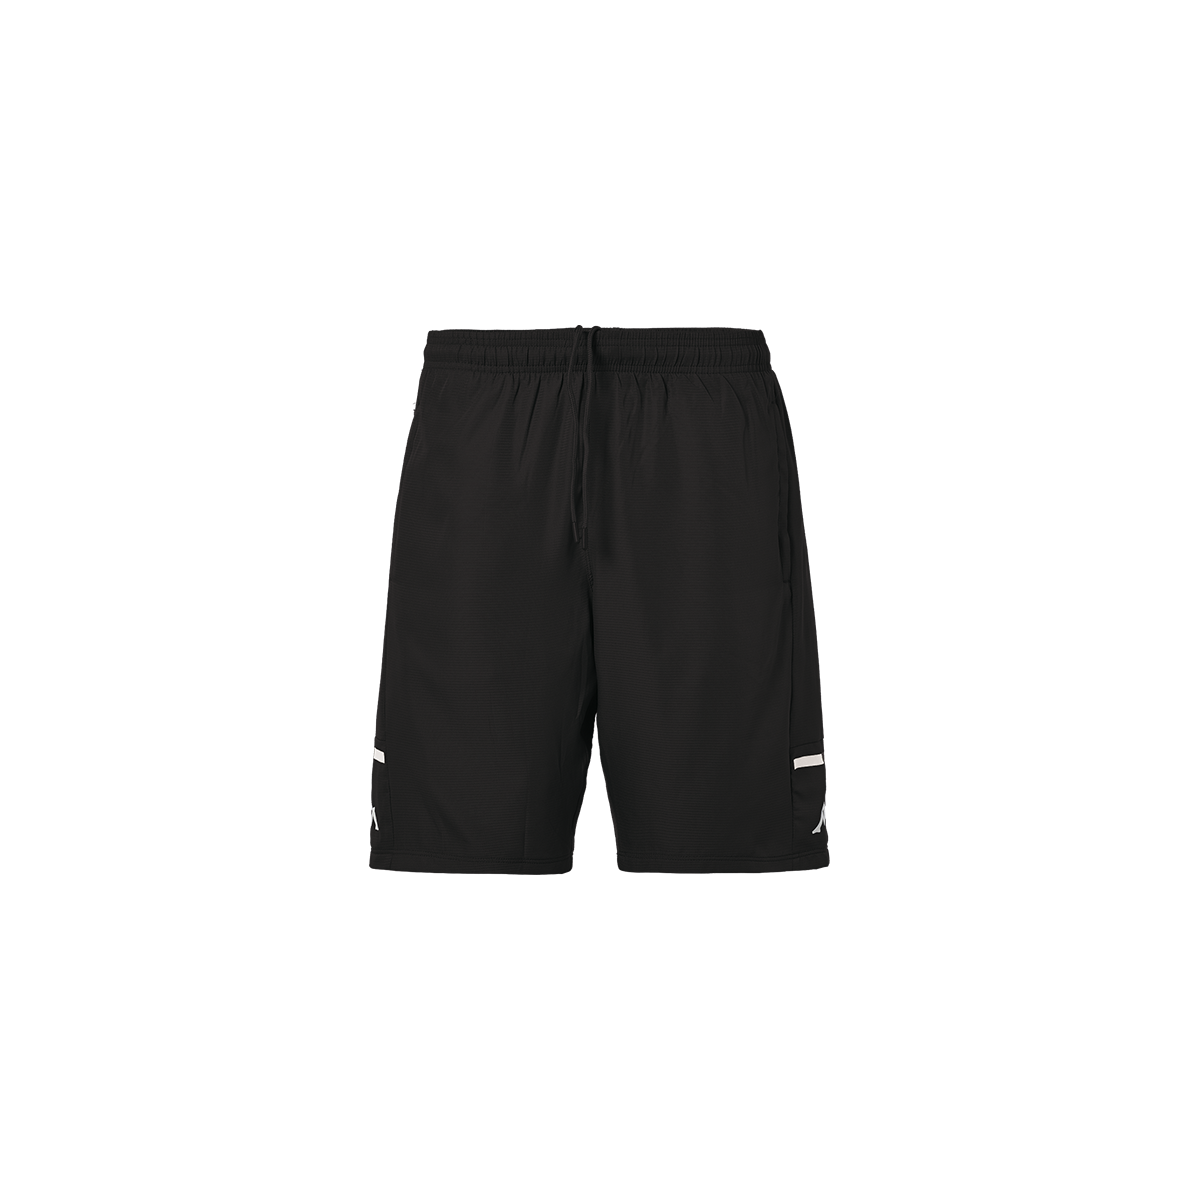 Kappa Alberg Pro 4 Training Long Short - Black/White